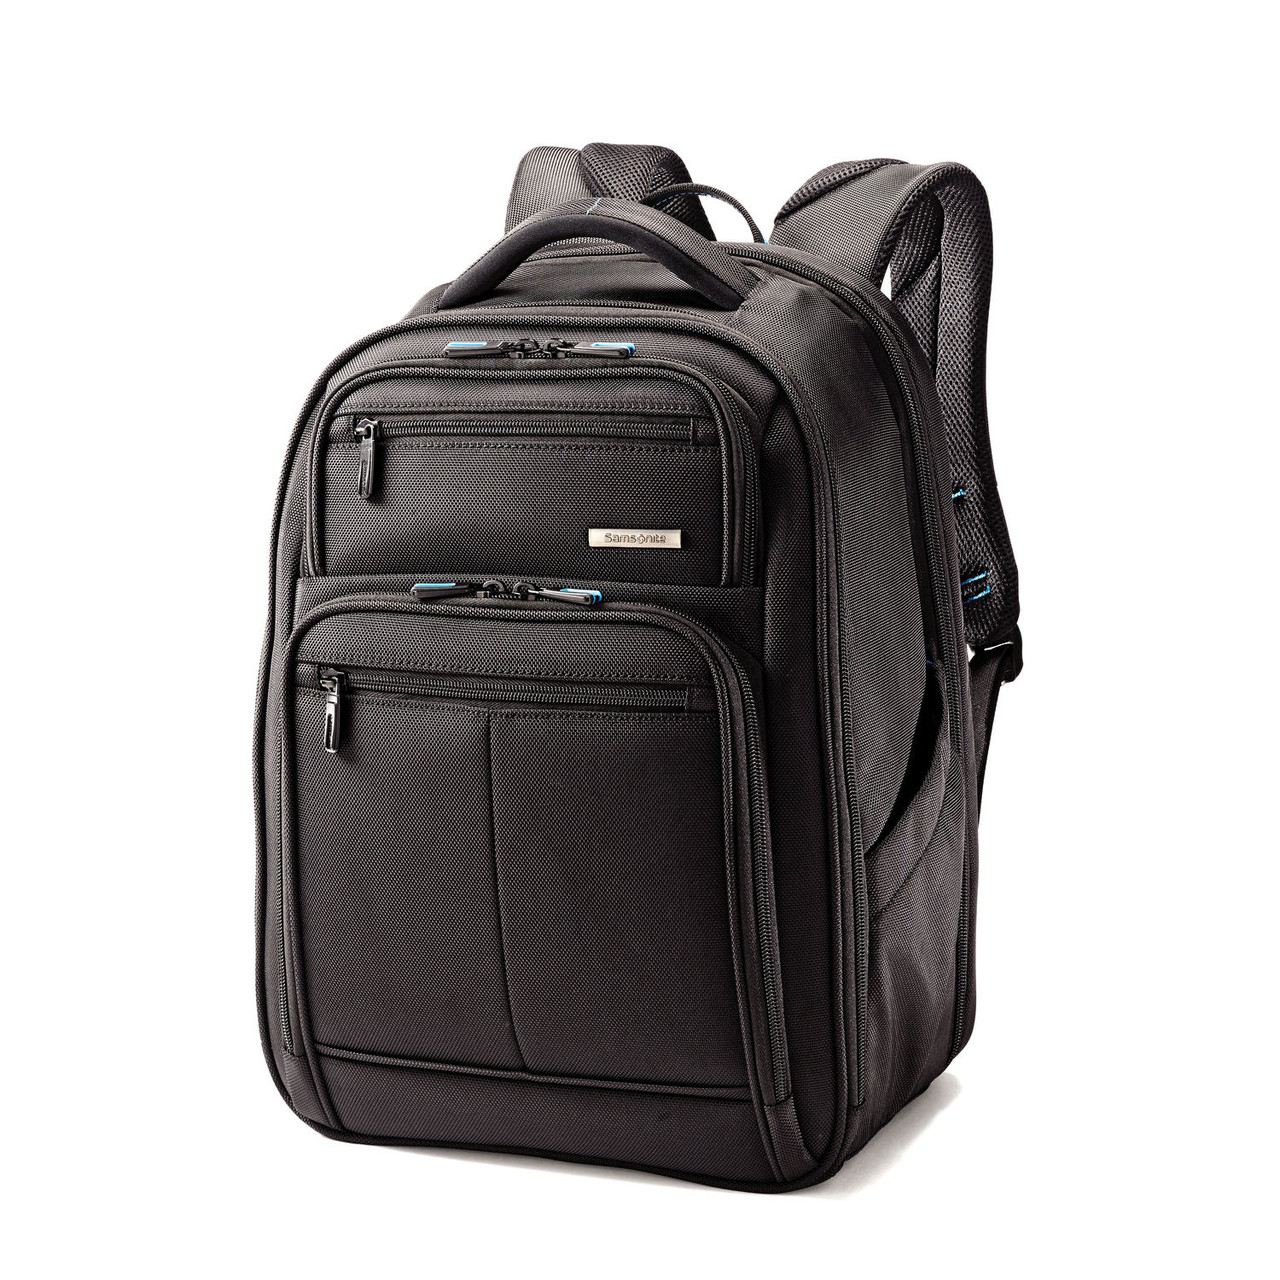 Рюкзак Samsonite Novex Perfect Fit Laptop Backpack